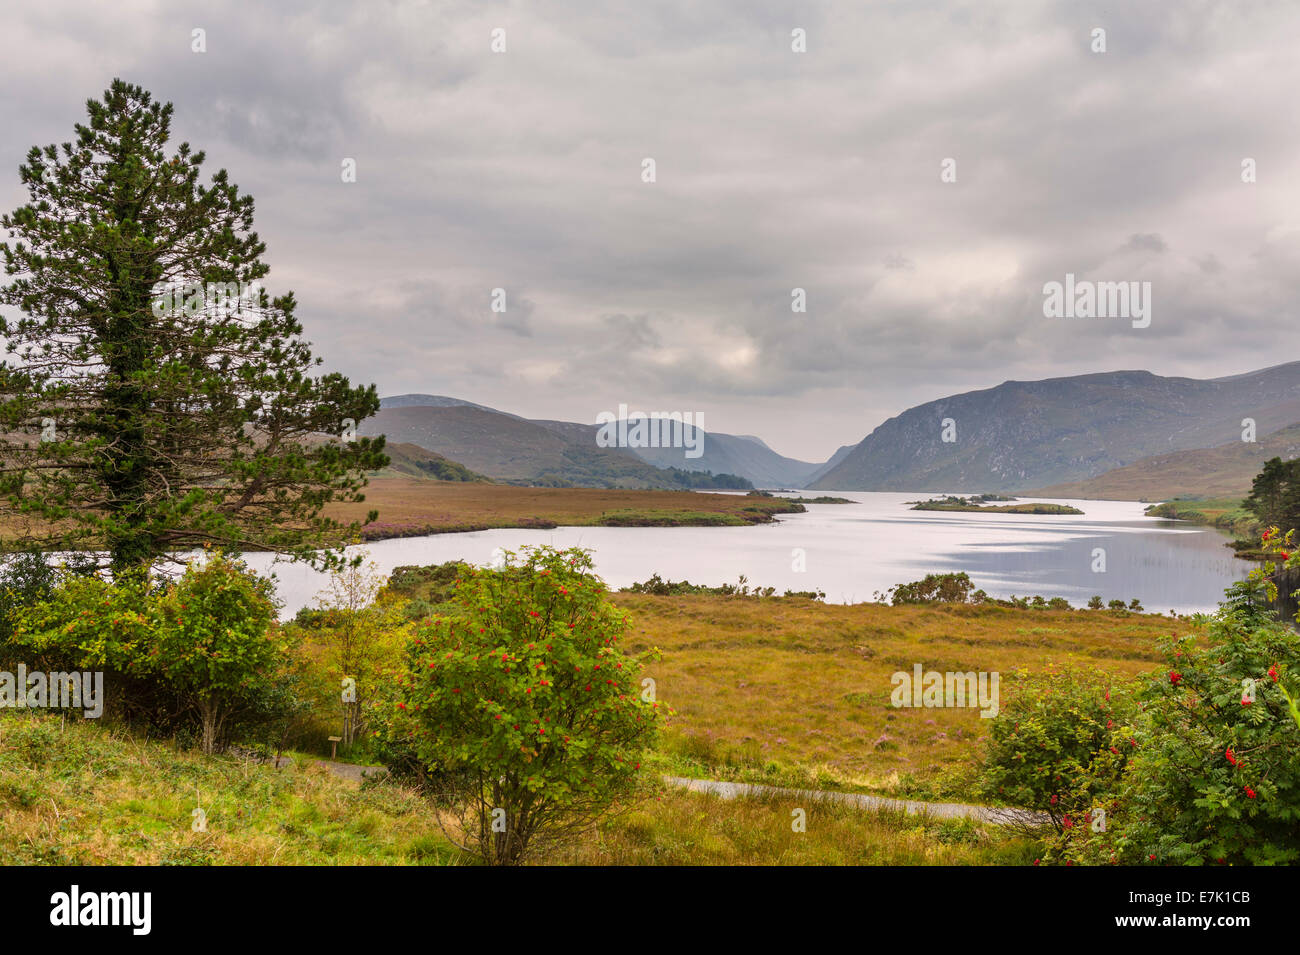 Lough Veagh at Glenveagh National Park, County Donegal, Republic of Ireland - Stock Image